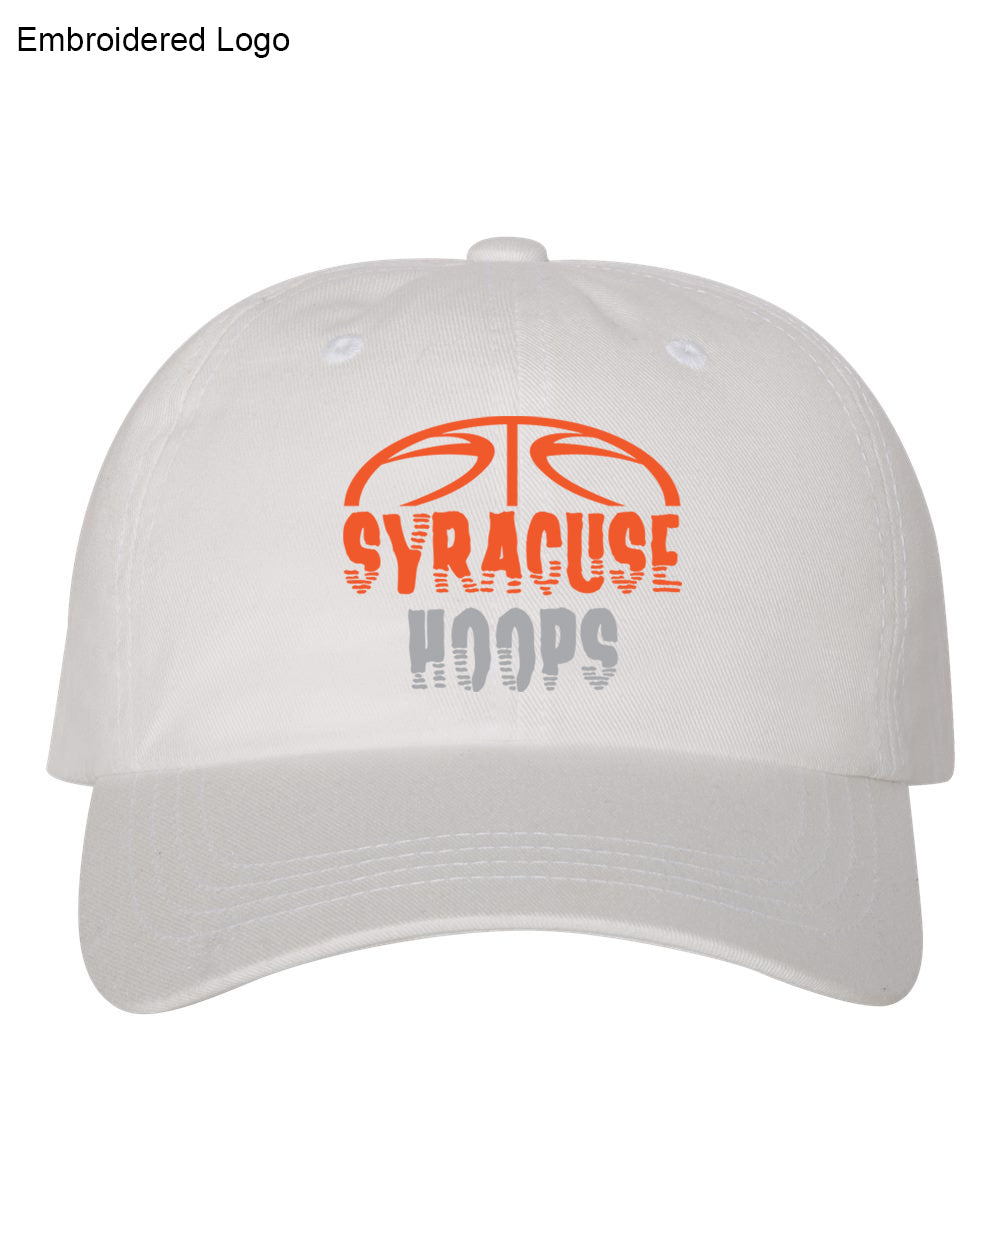 Hoops White Dad Hat